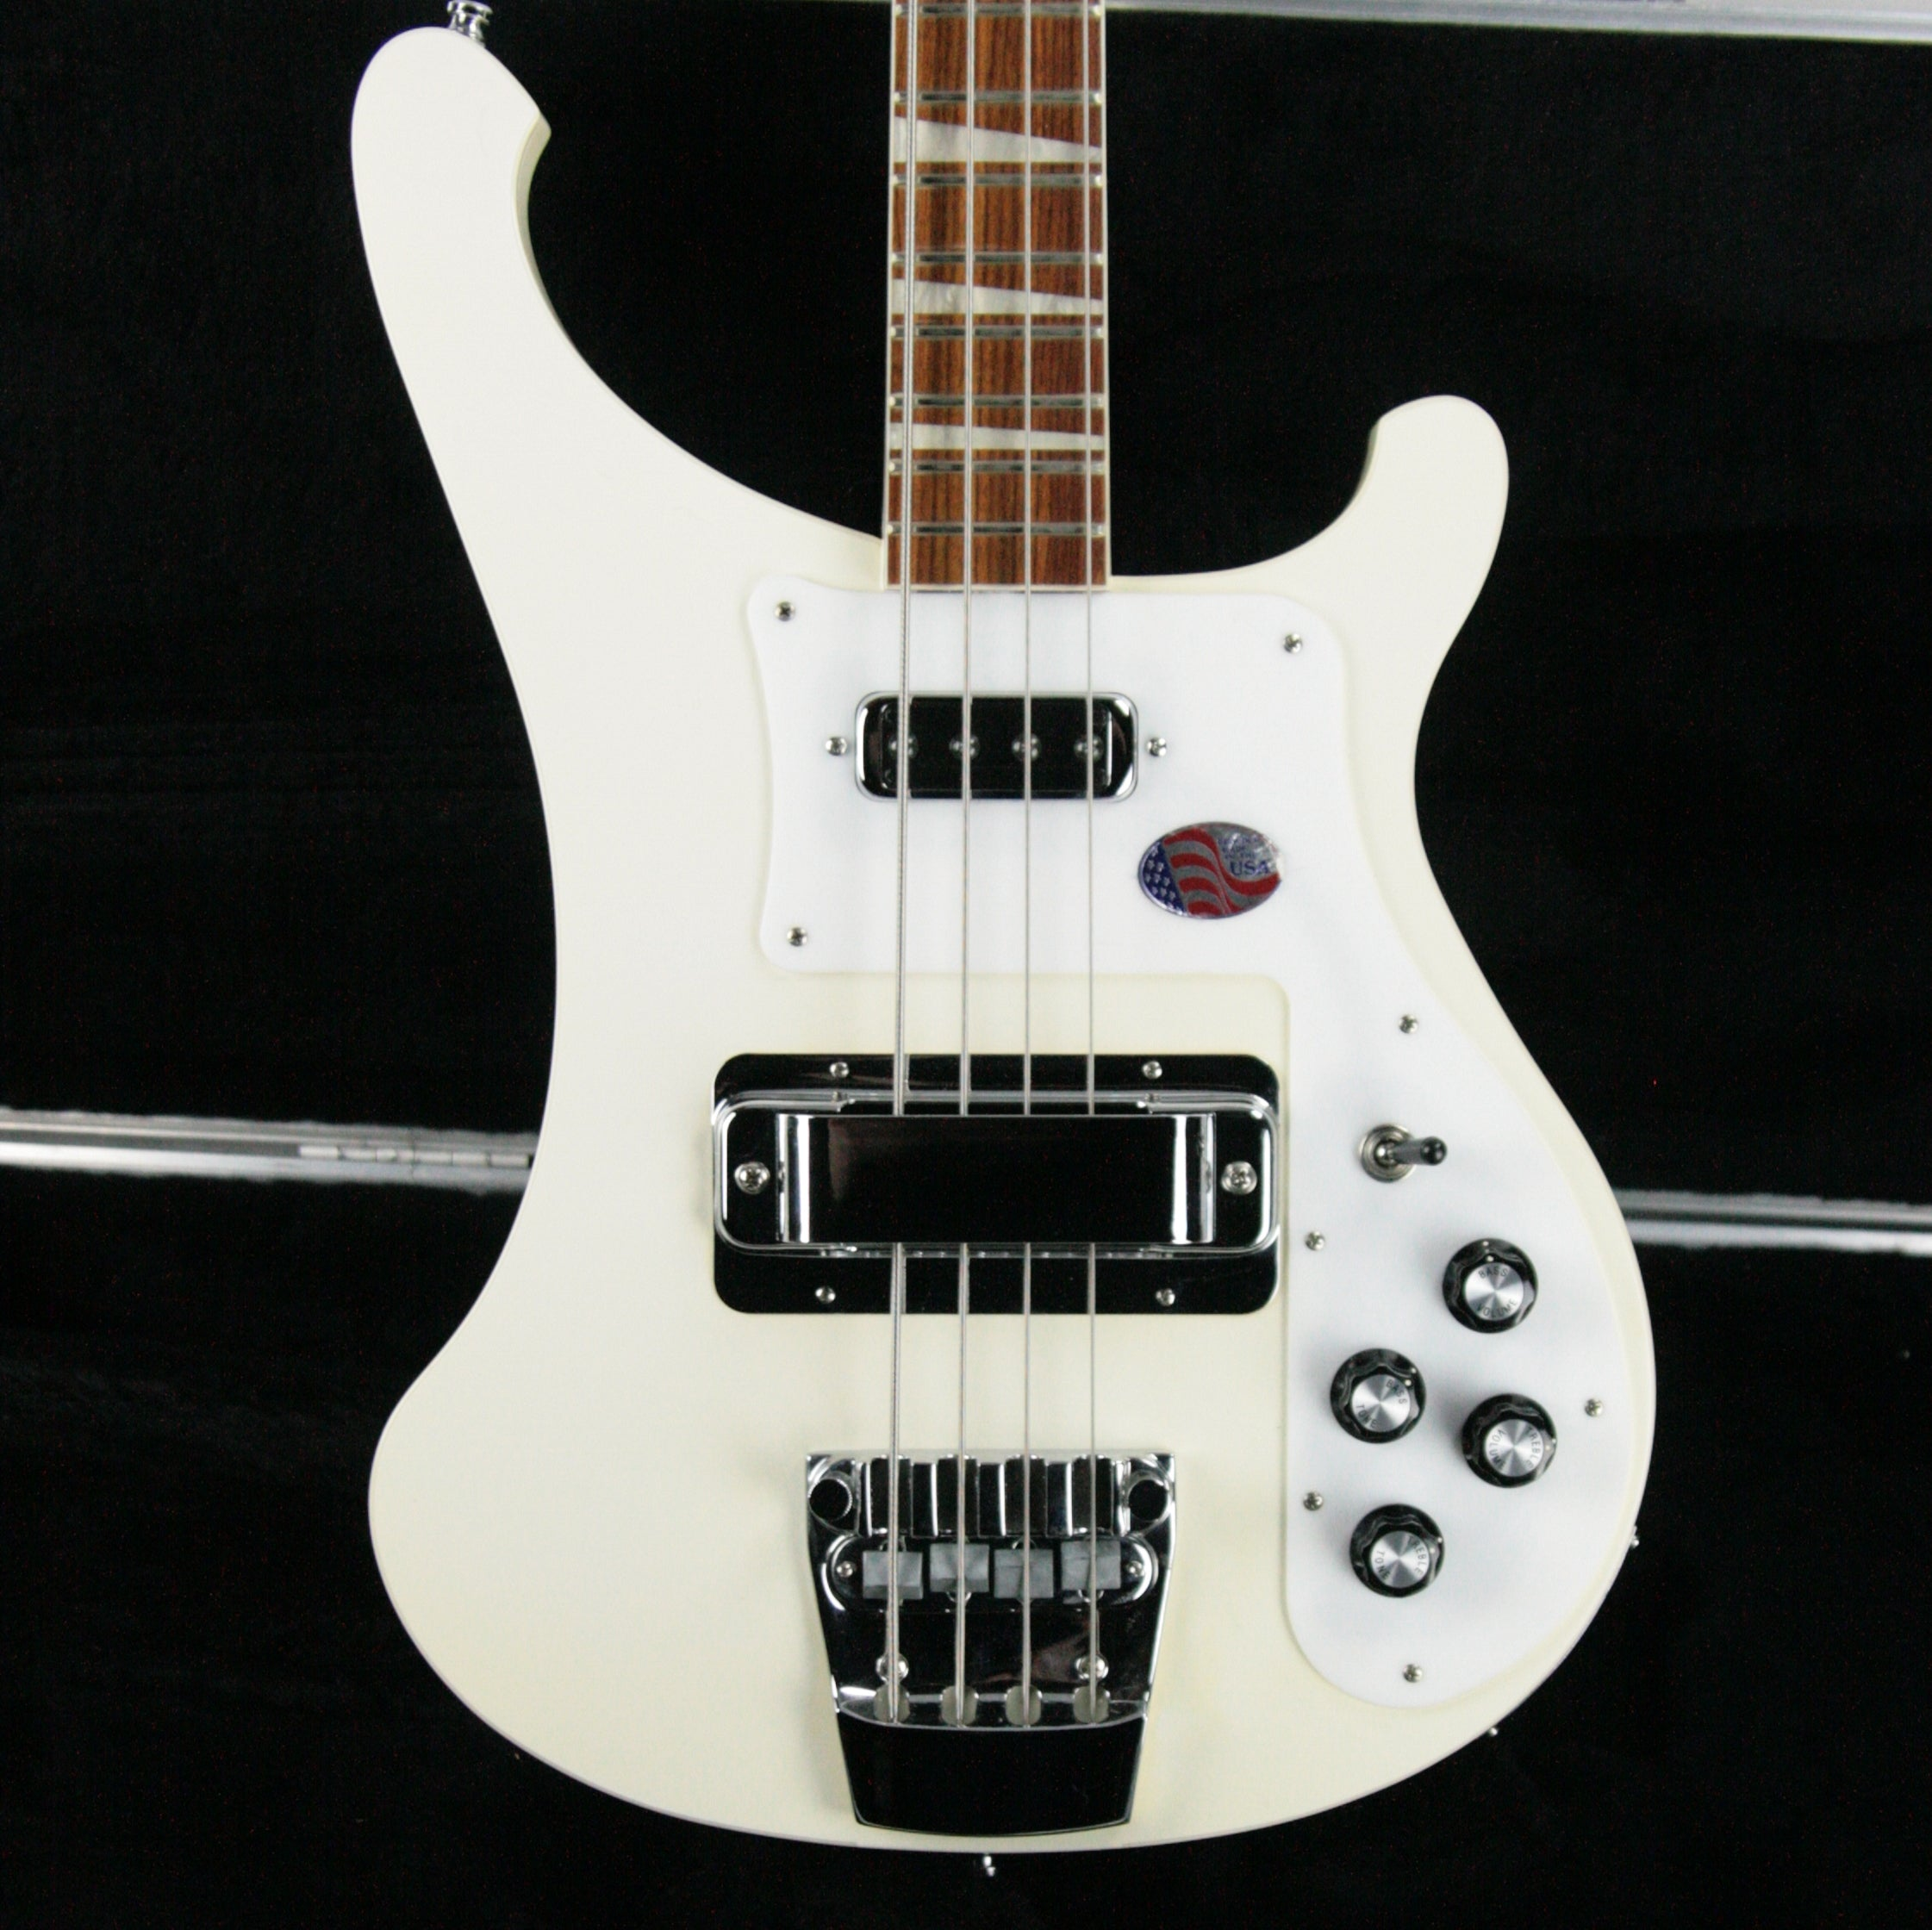 2013 Rickenbacker 4003 Snowglo White! Limited Edition Bass Guitar! EXTREMELY RARE COLOR